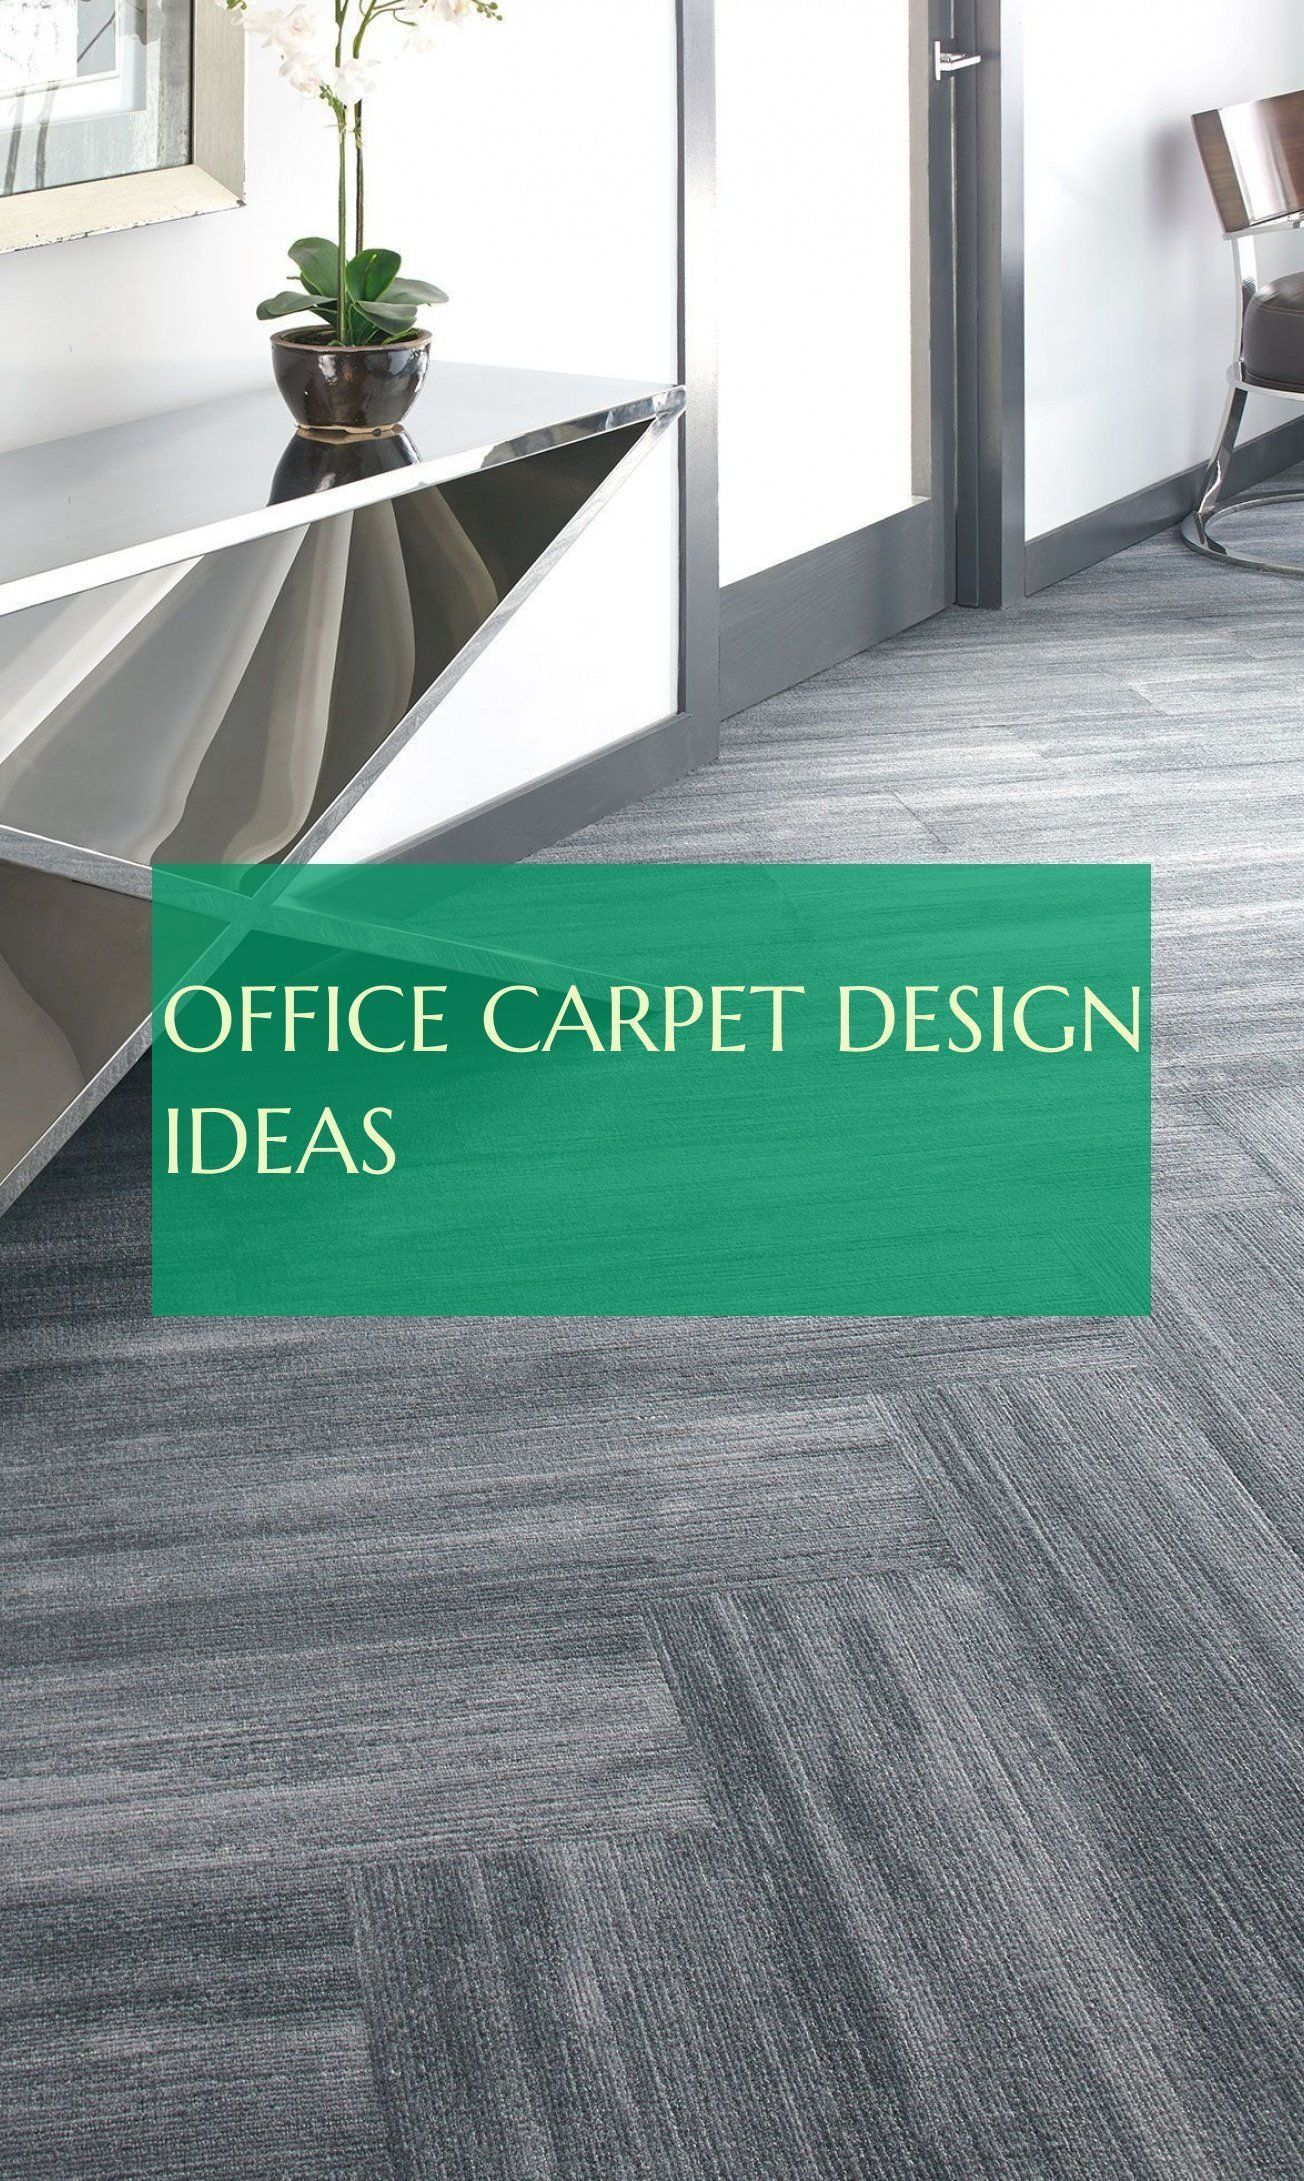 New Pic Carpet Tiles Top View Tips Commercial Flooring Options Are Many But The Carpe In 2020 Carpet Tiles Commercial Flooring Flooring Options